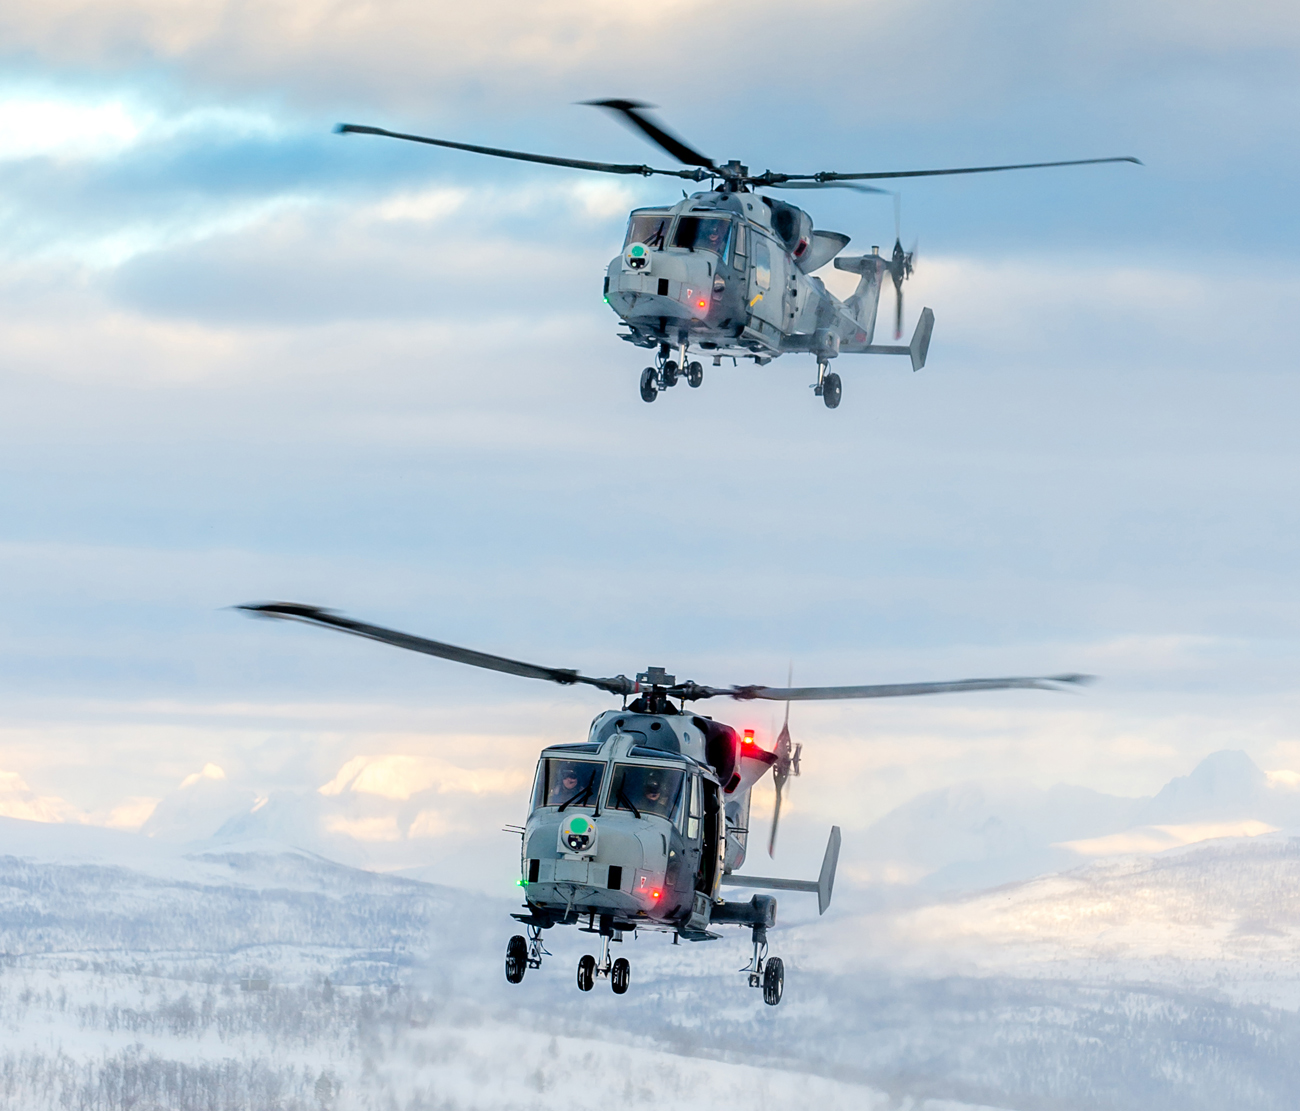 helicopter pilot training bc with 160310 Chf Wildcats In Norway on Prince Harry Retire British Army June Palace Says T9191 moreover 160310 Chf Wildcats In Norway further How To Be e A Pilot In Canada Bc as well Faa Instrument Flying Manual furthermore France To Train Russian Seaman On Warship 2014 6.